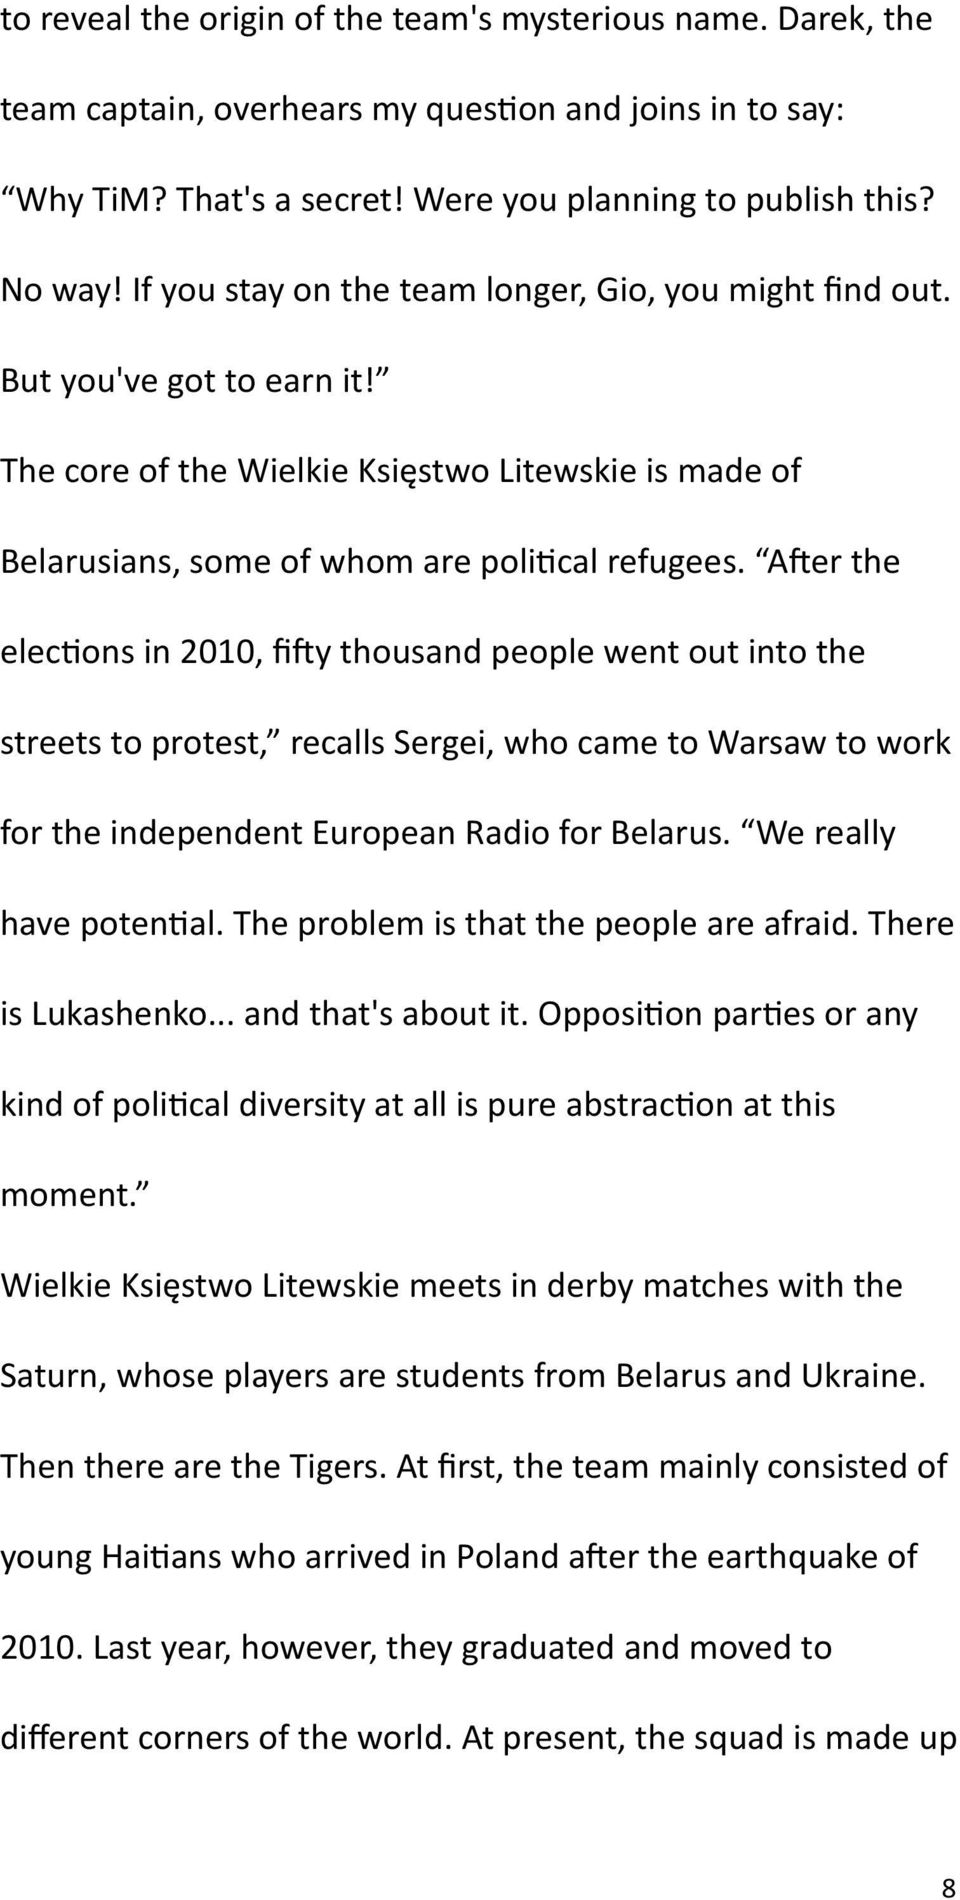 After the elections in 2010, fifty thousand people went out into the streets to protest, recalls Sergei, who came to Warsaw to work for the independent European Radio for Belarus.